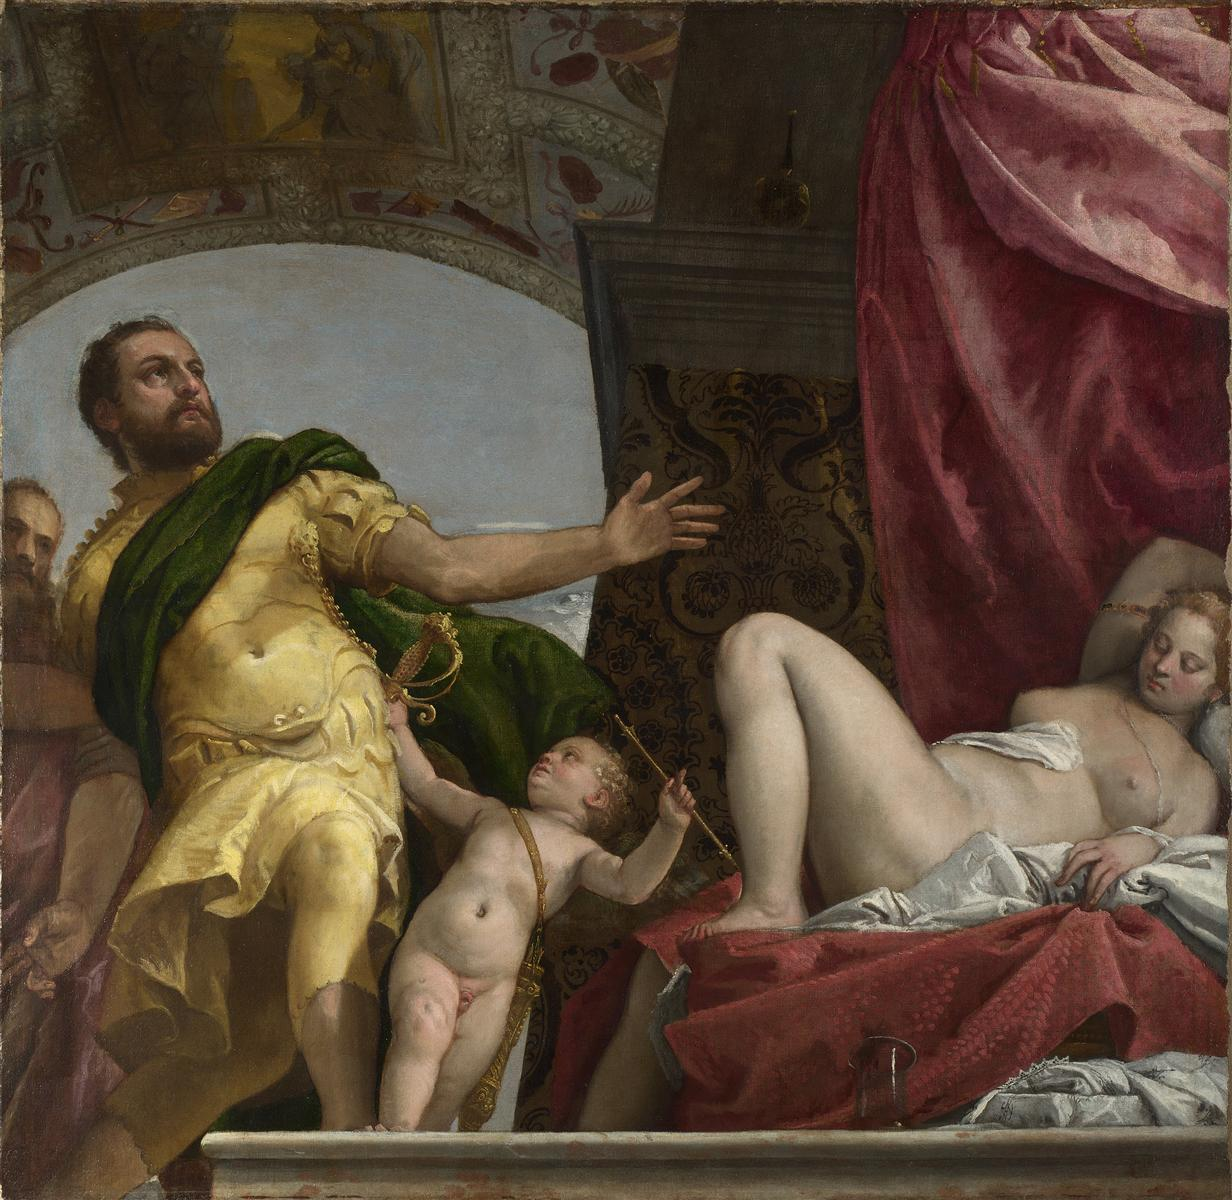 http://uploads8.wikipaintings.org/images/paolo-veronese/respect.jpg!HD.jpg